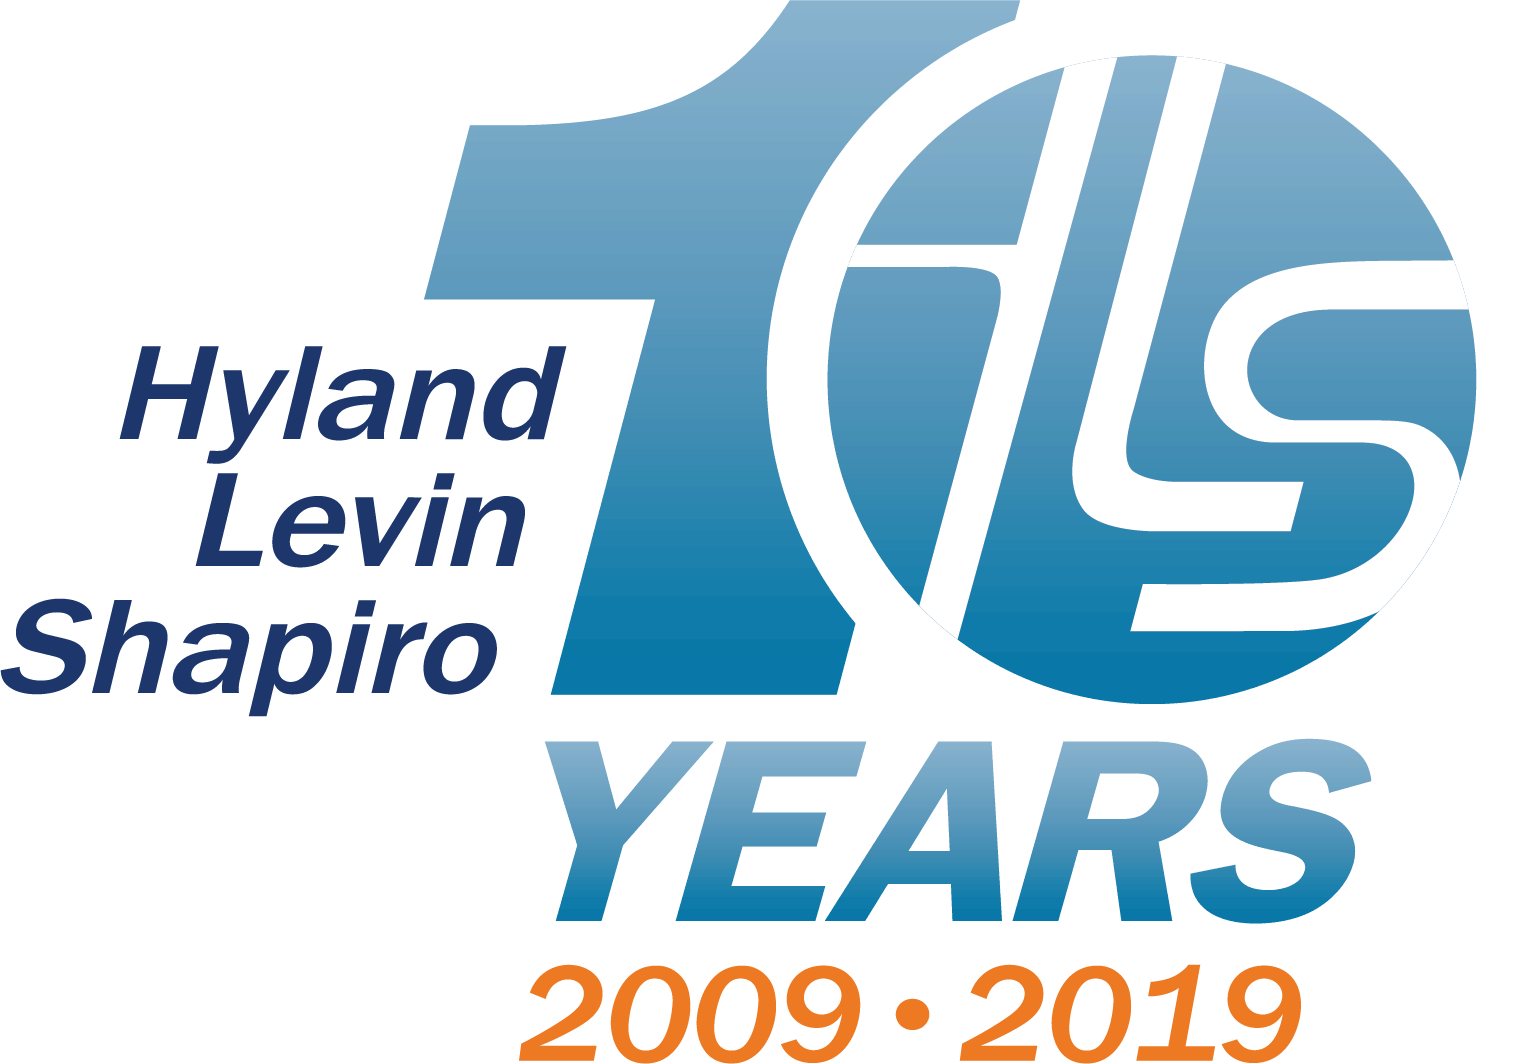 Hyland Levin Shapiro going strong for 10 years